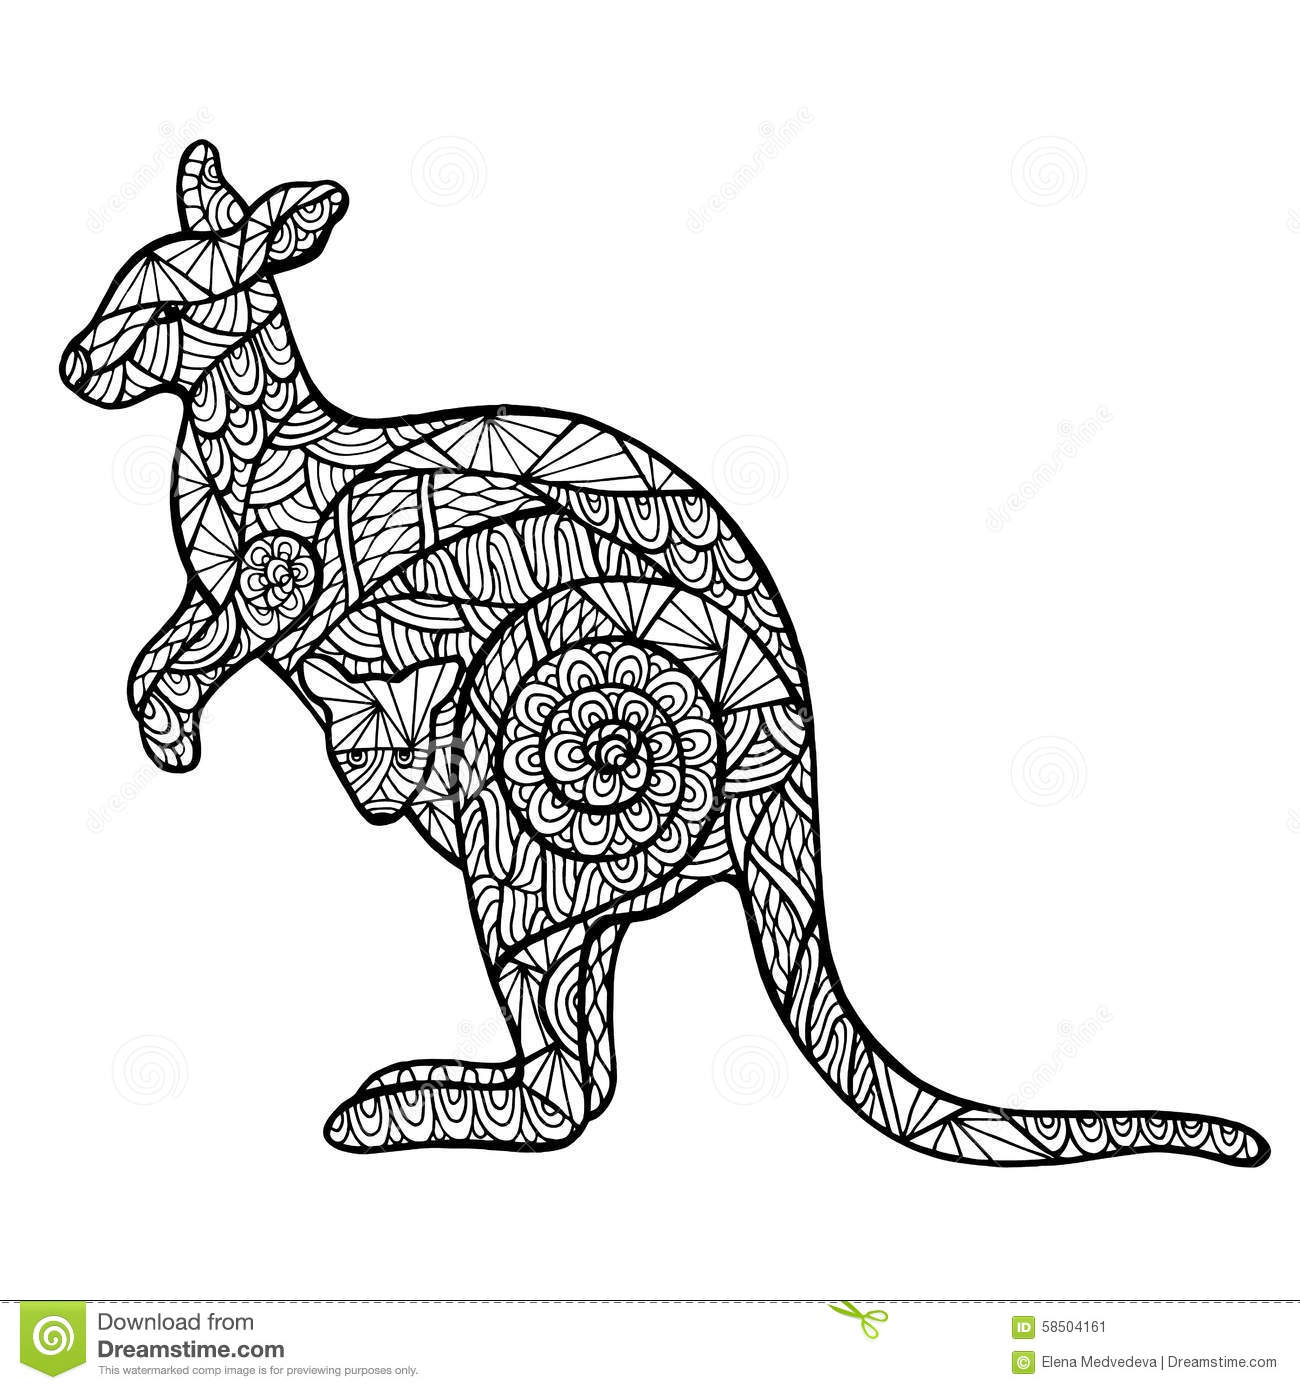 how to create a zentangle animal